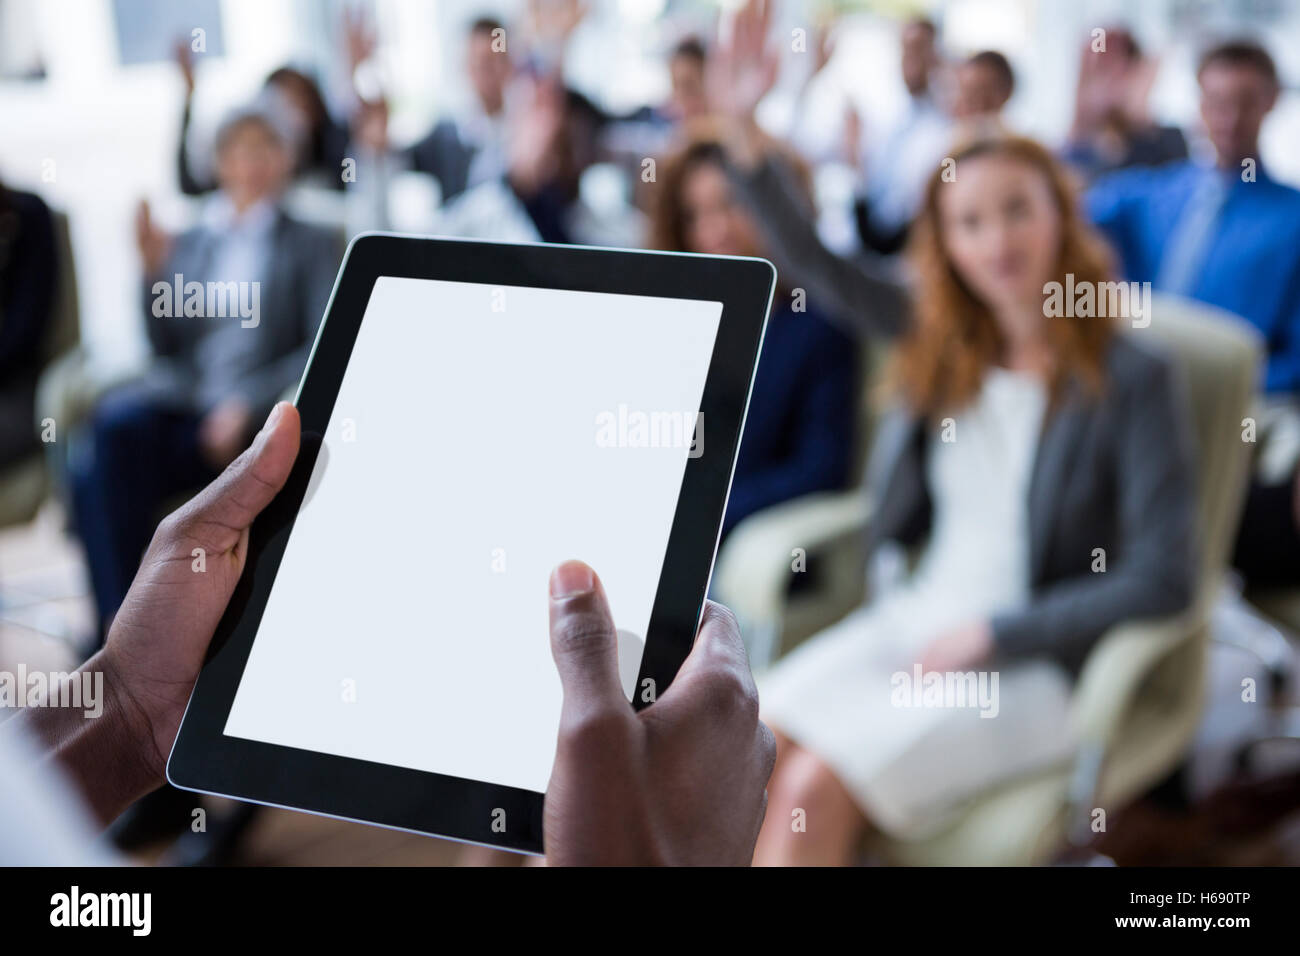 Businessperson using digital tablet during meeting - Stock Image